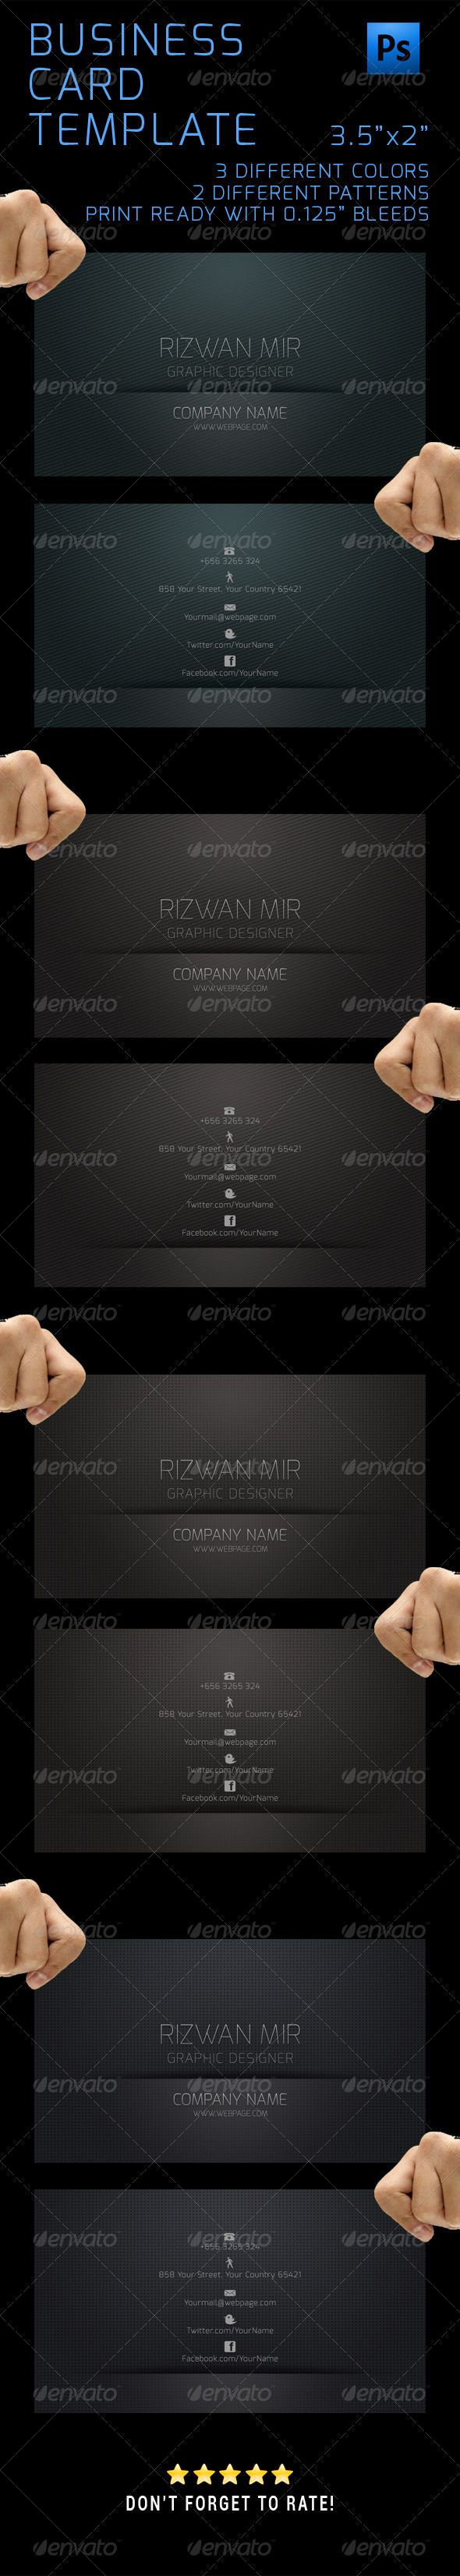 7 best business cards template images on pinterest